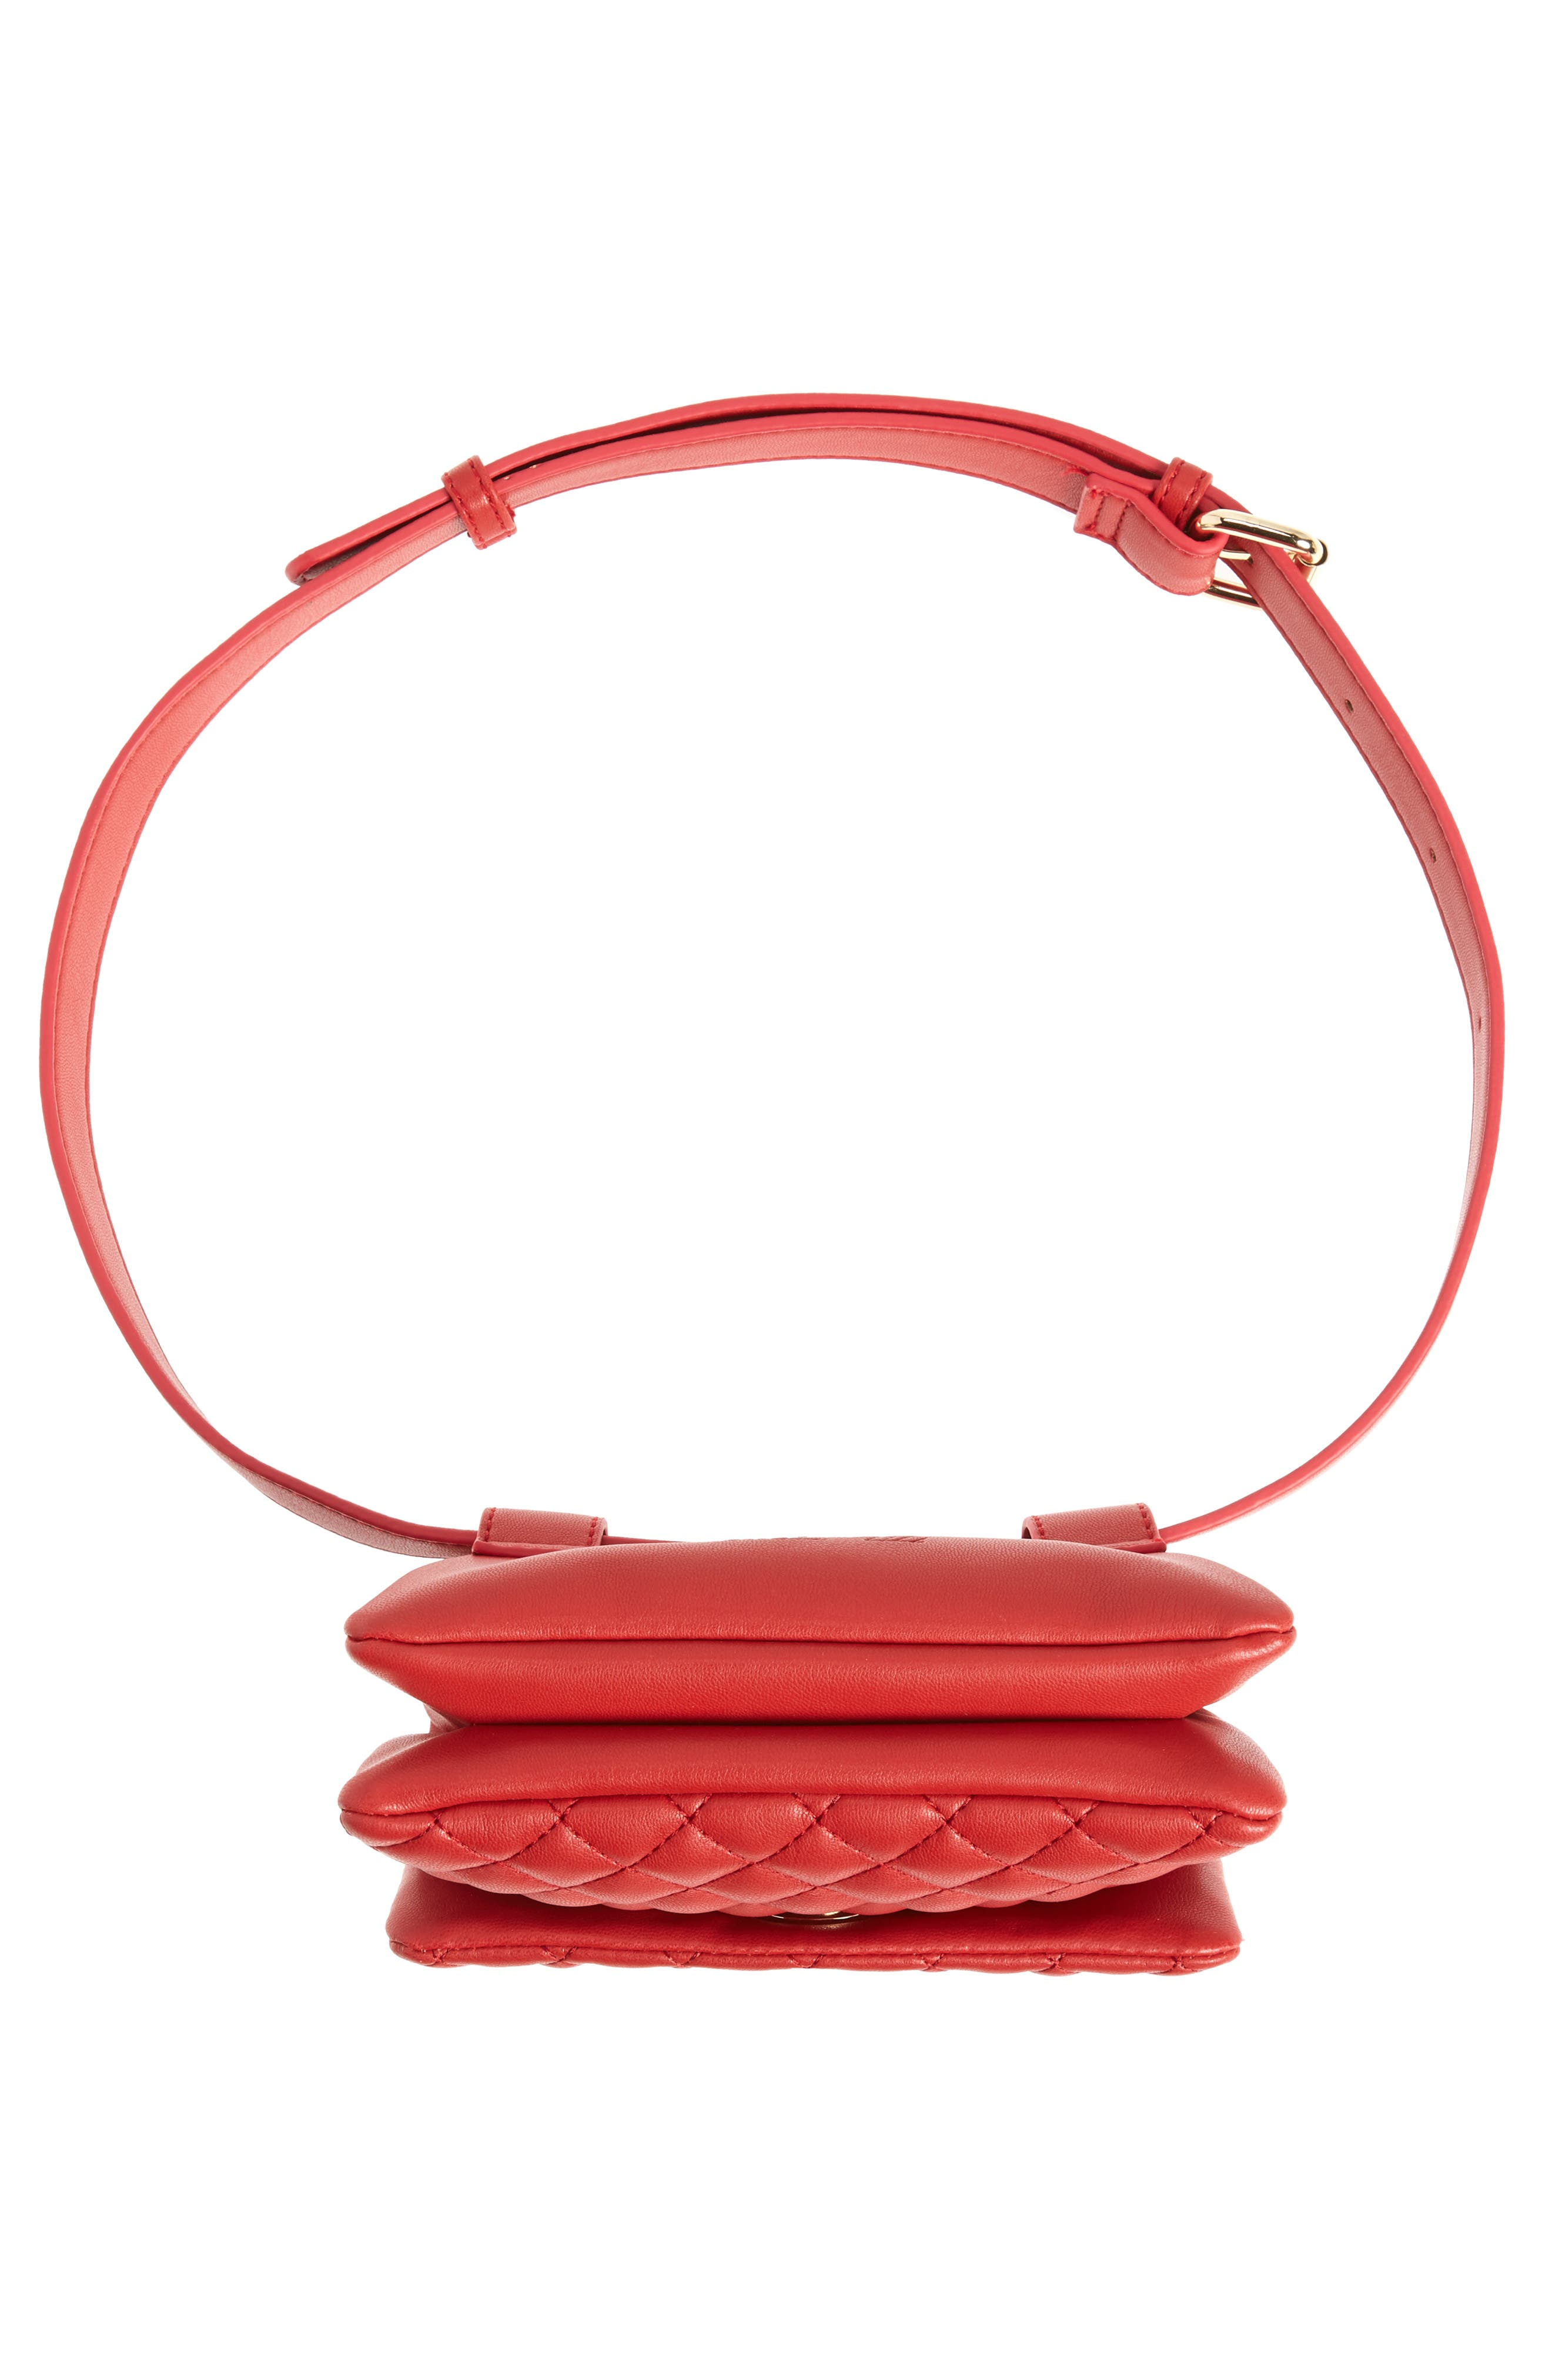 Mali + Lili Quilted Vegan Leather Convertible Belt Bag,                             Alternate thumbnail 9, color,                             Red